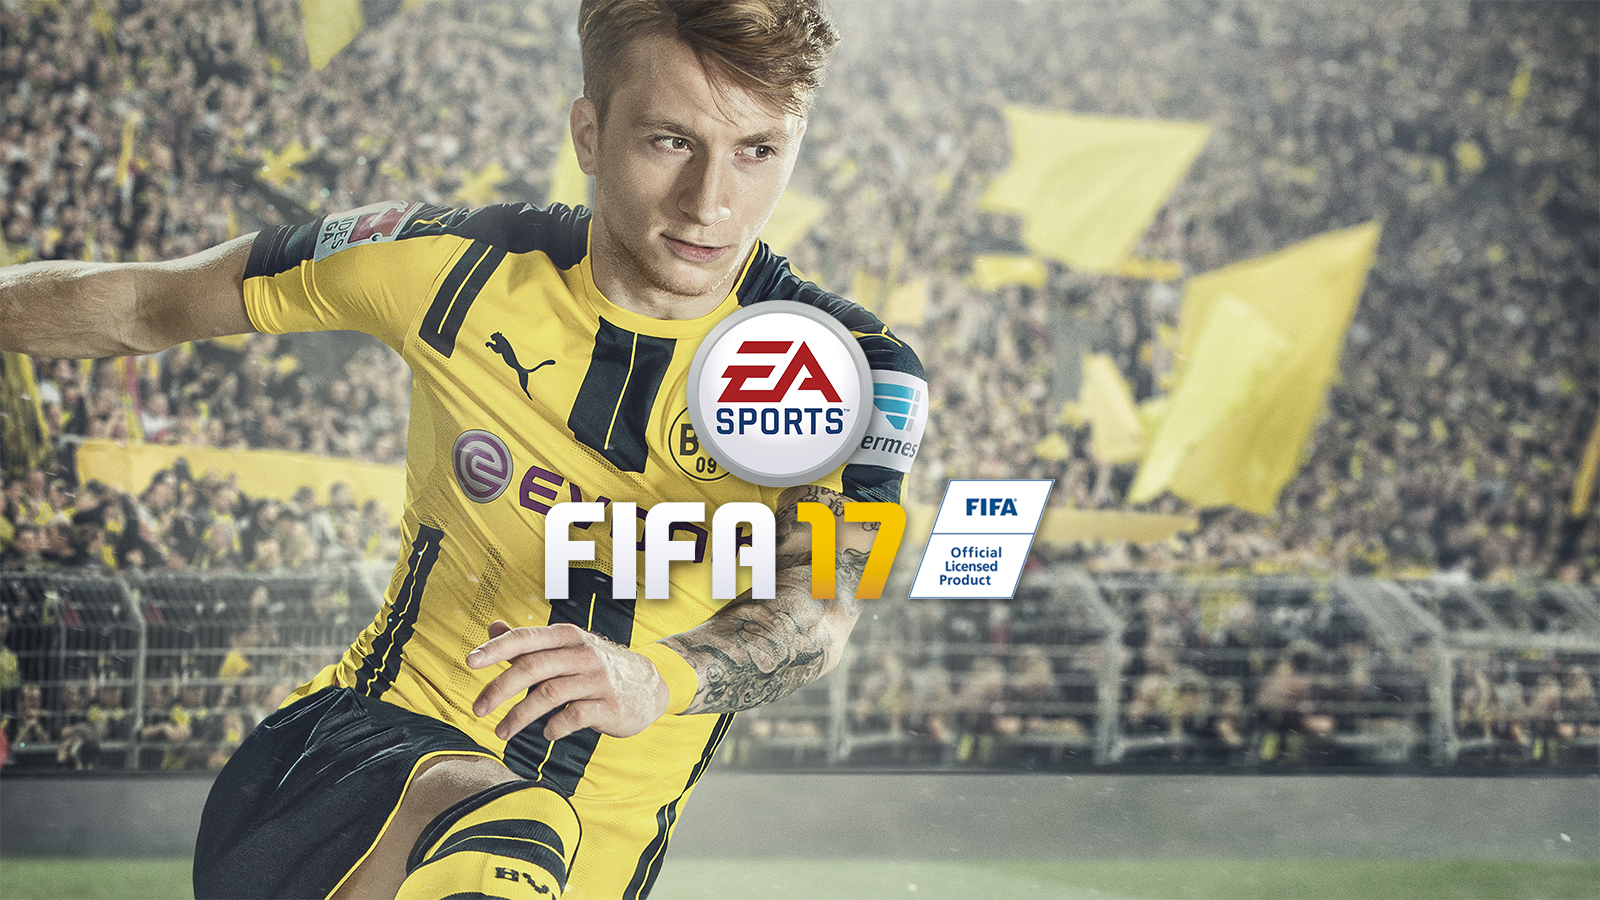 ea sports fifa 17 game ps4 playstation. Black Bedroom Furniture Sets. Home Design Ideas